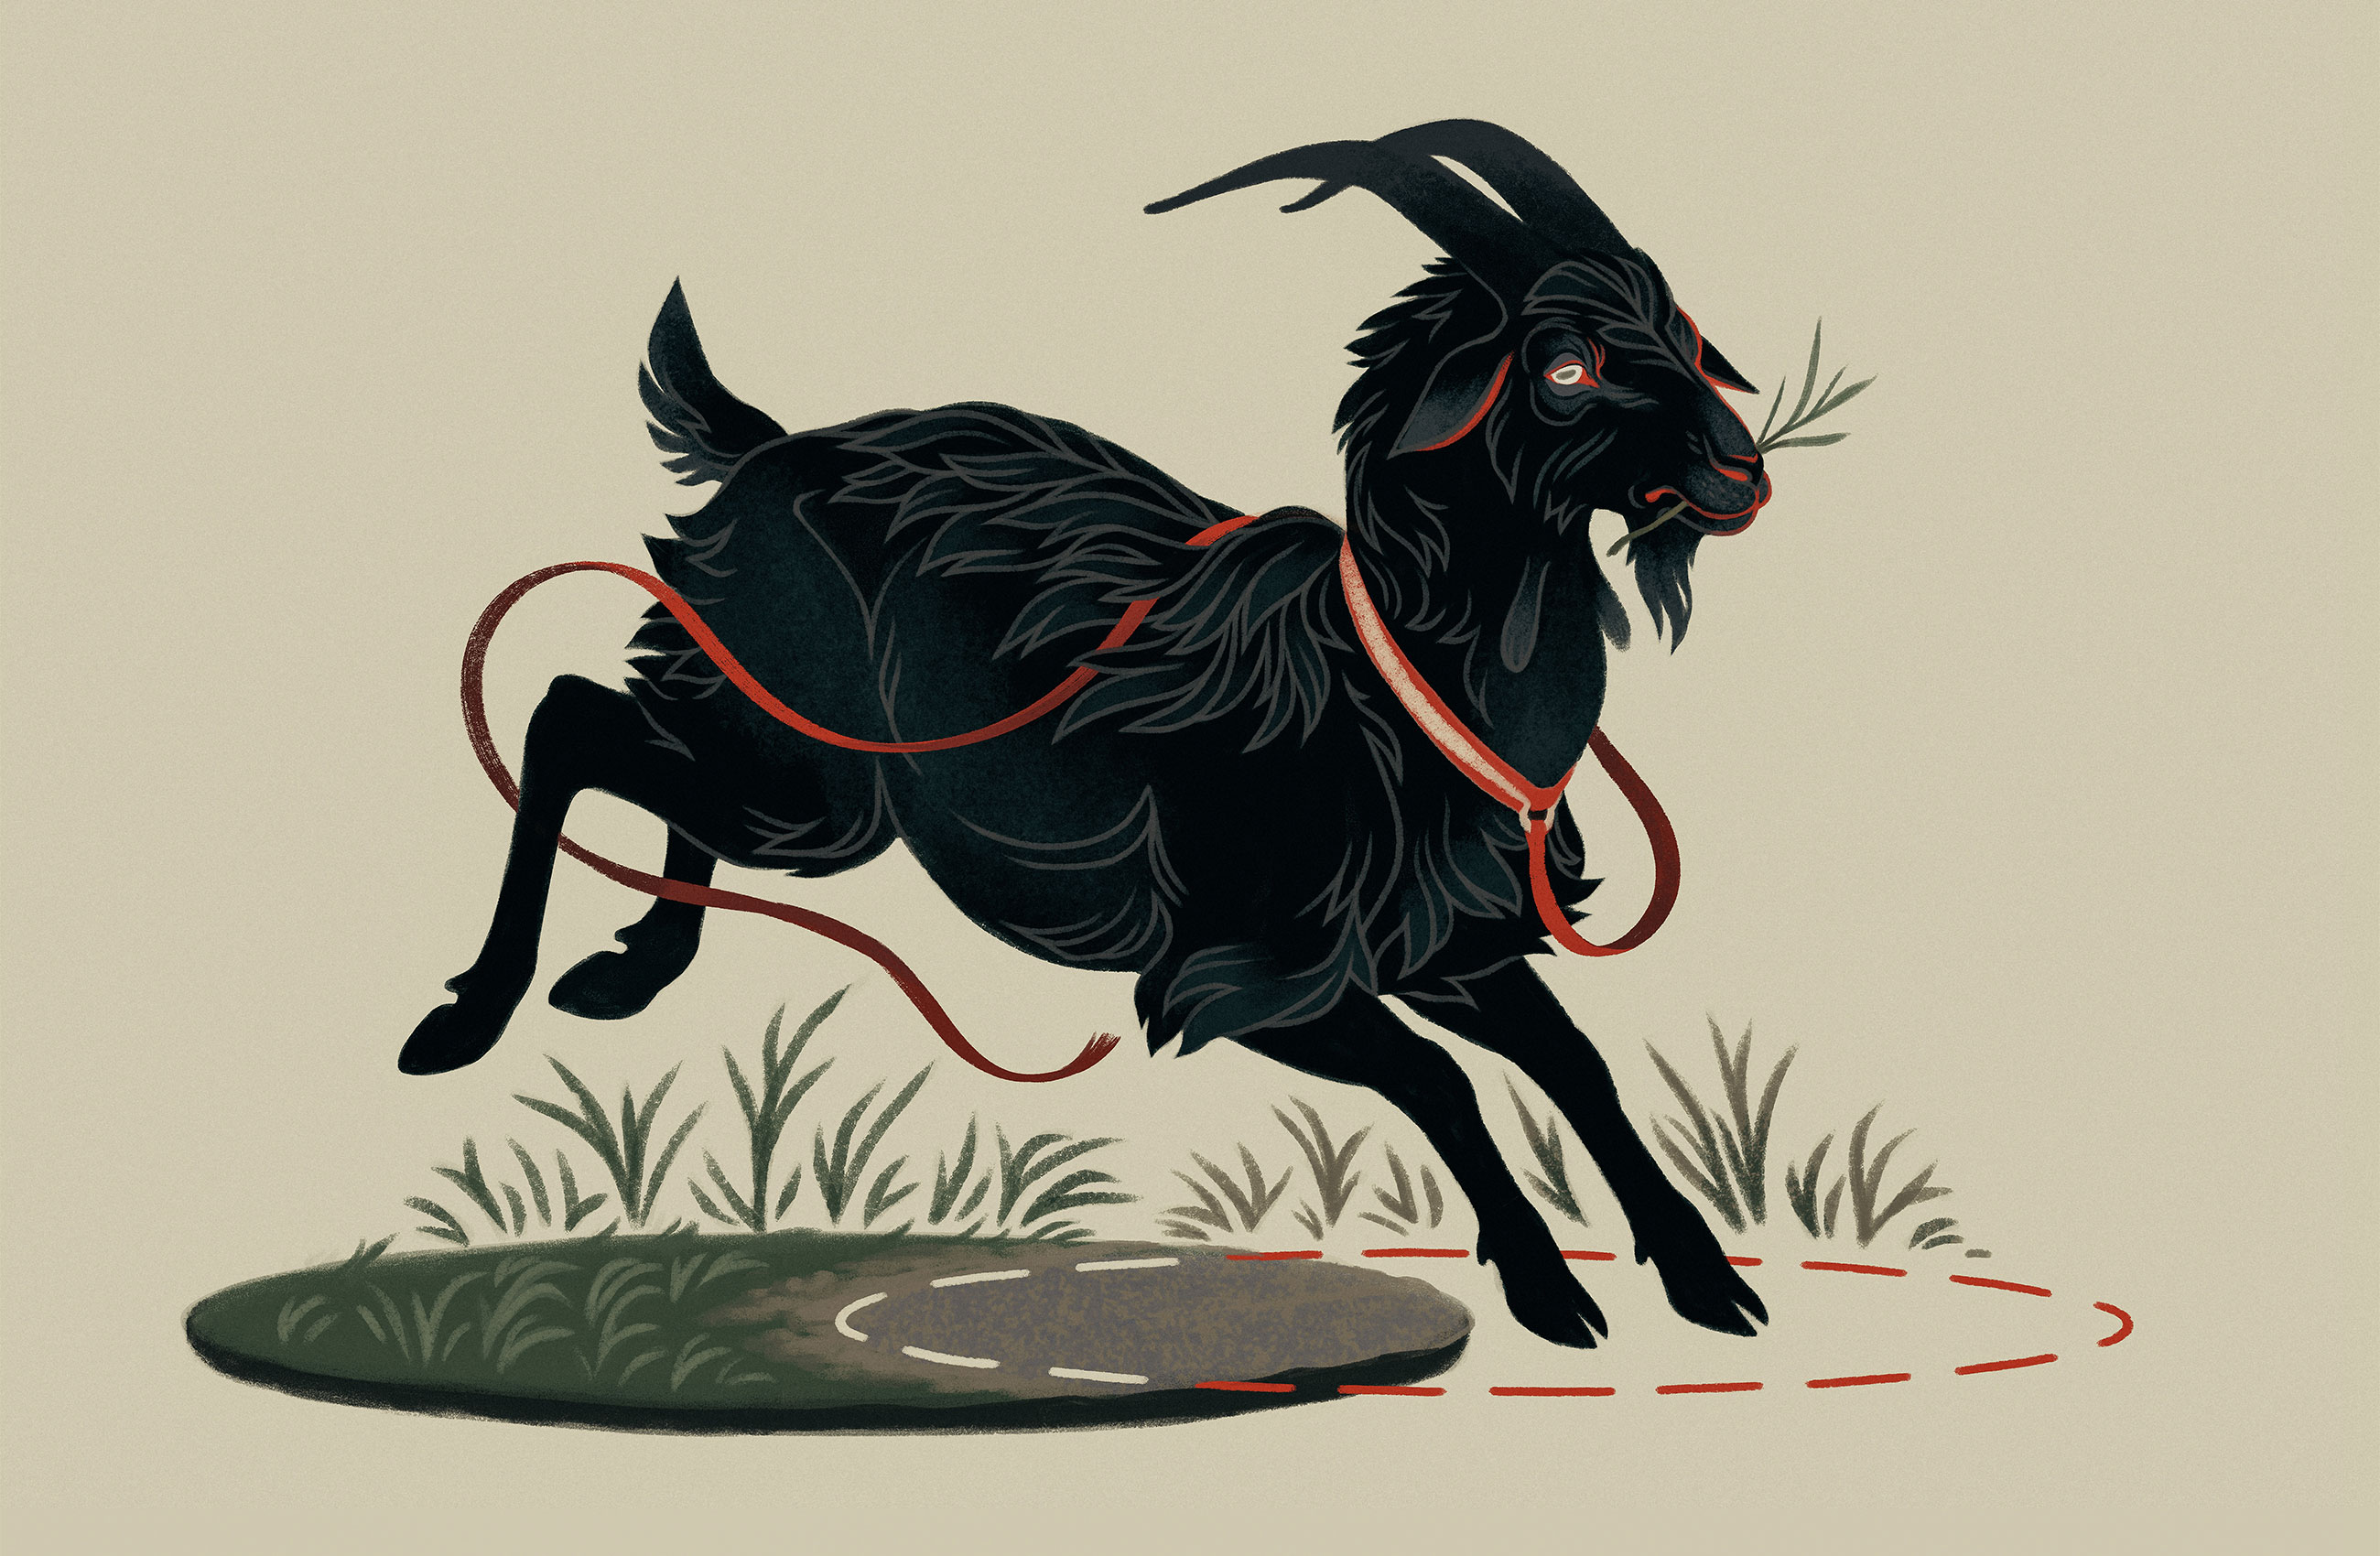 Illustration of a black goat with a red leash, grazing at the intersection of two circles